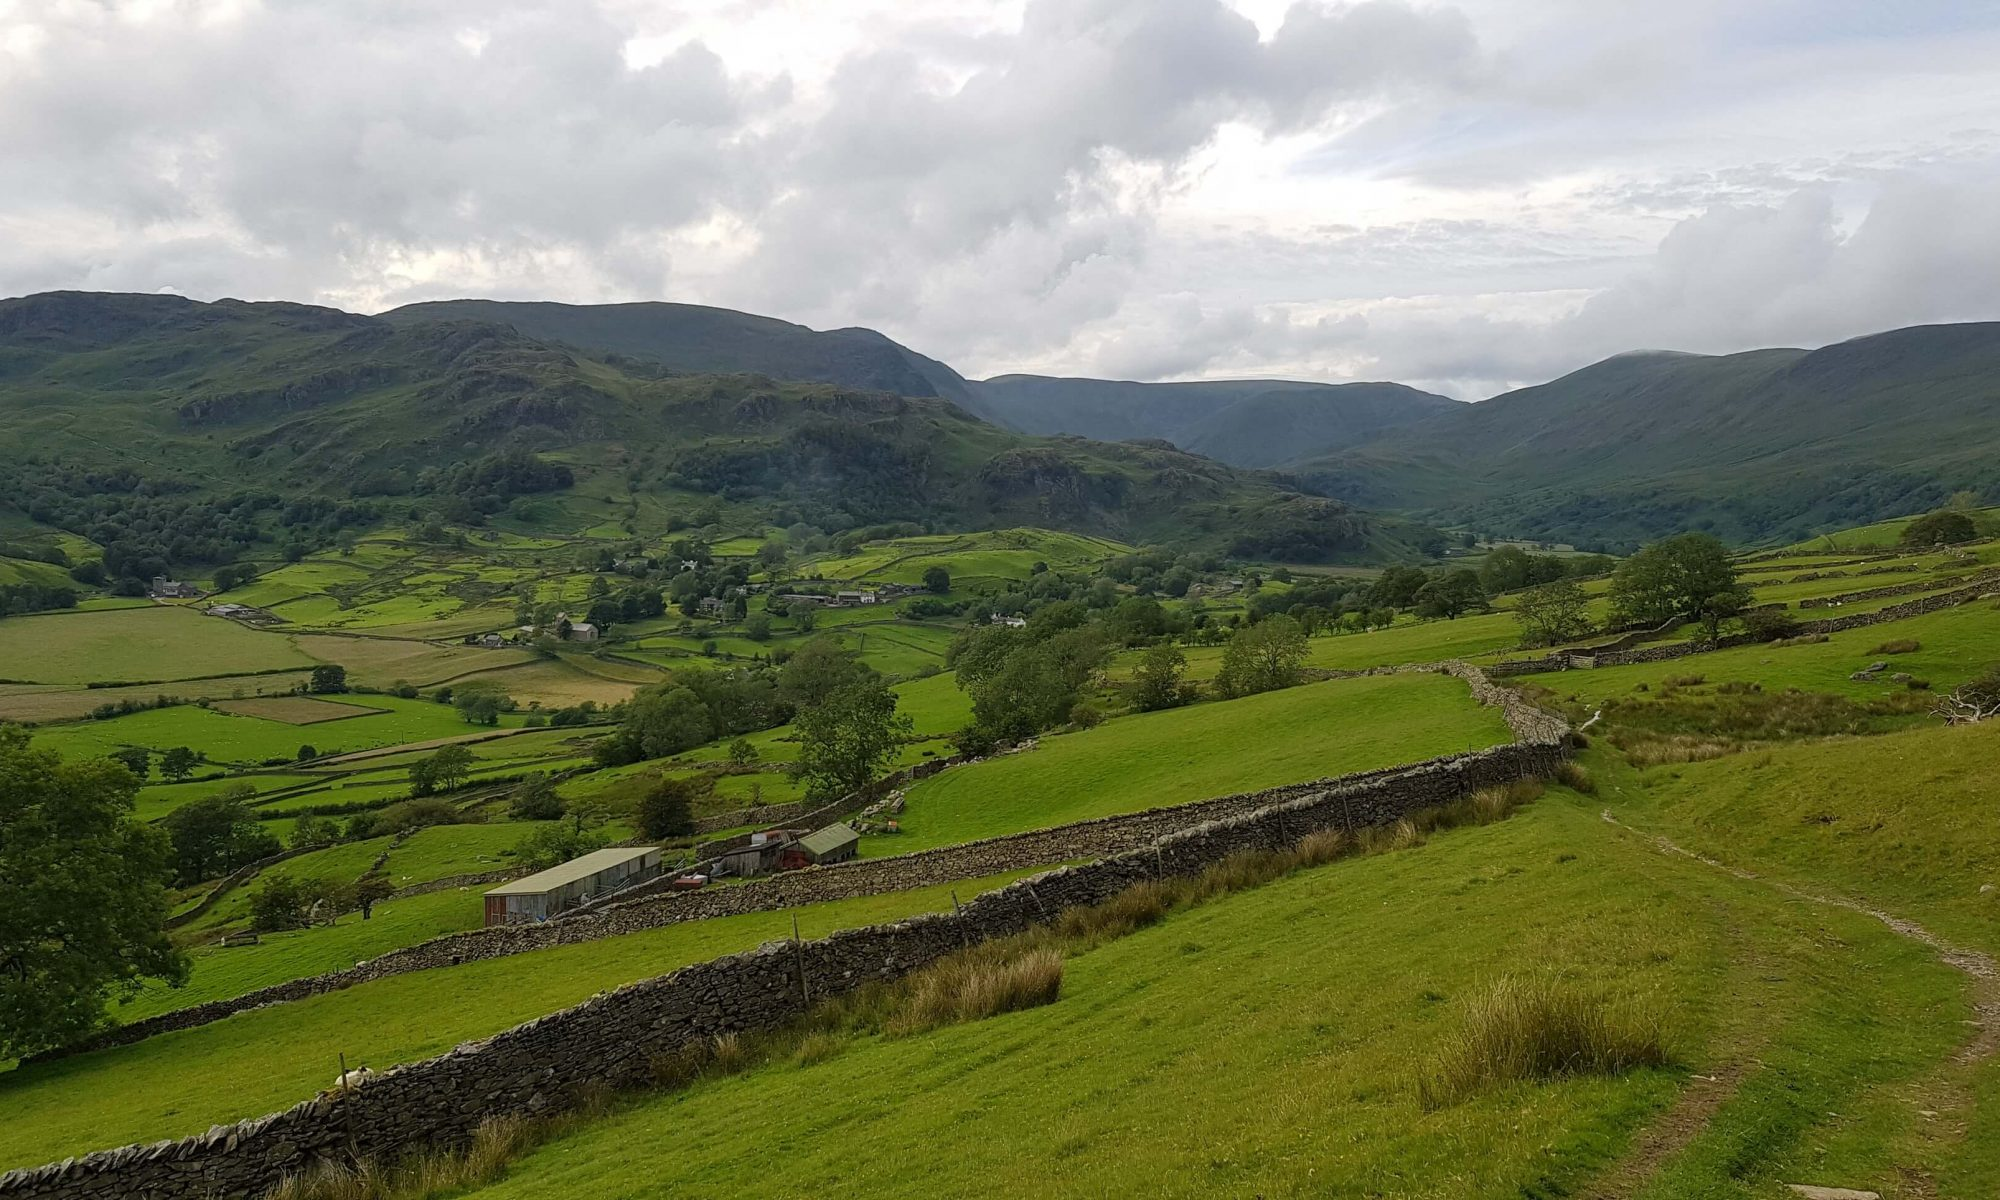 View back to Kentmere from the ascent of Green Quarter Fell